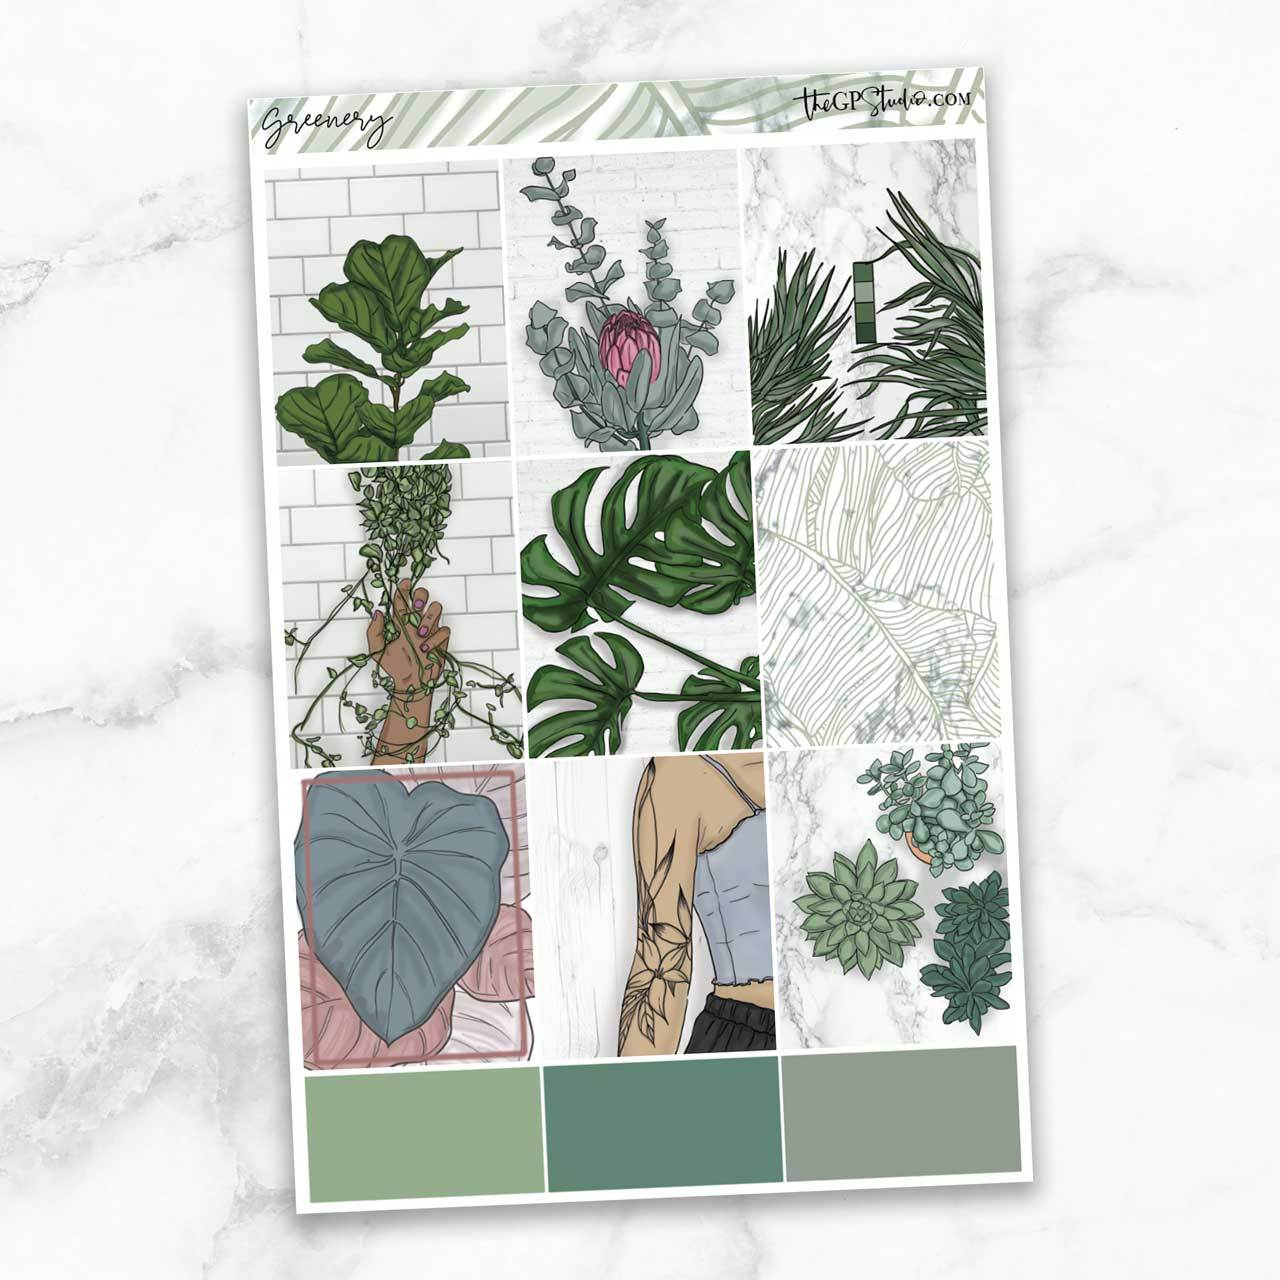 GREENERY Full Boxes Planner Stickers-The GP Studio